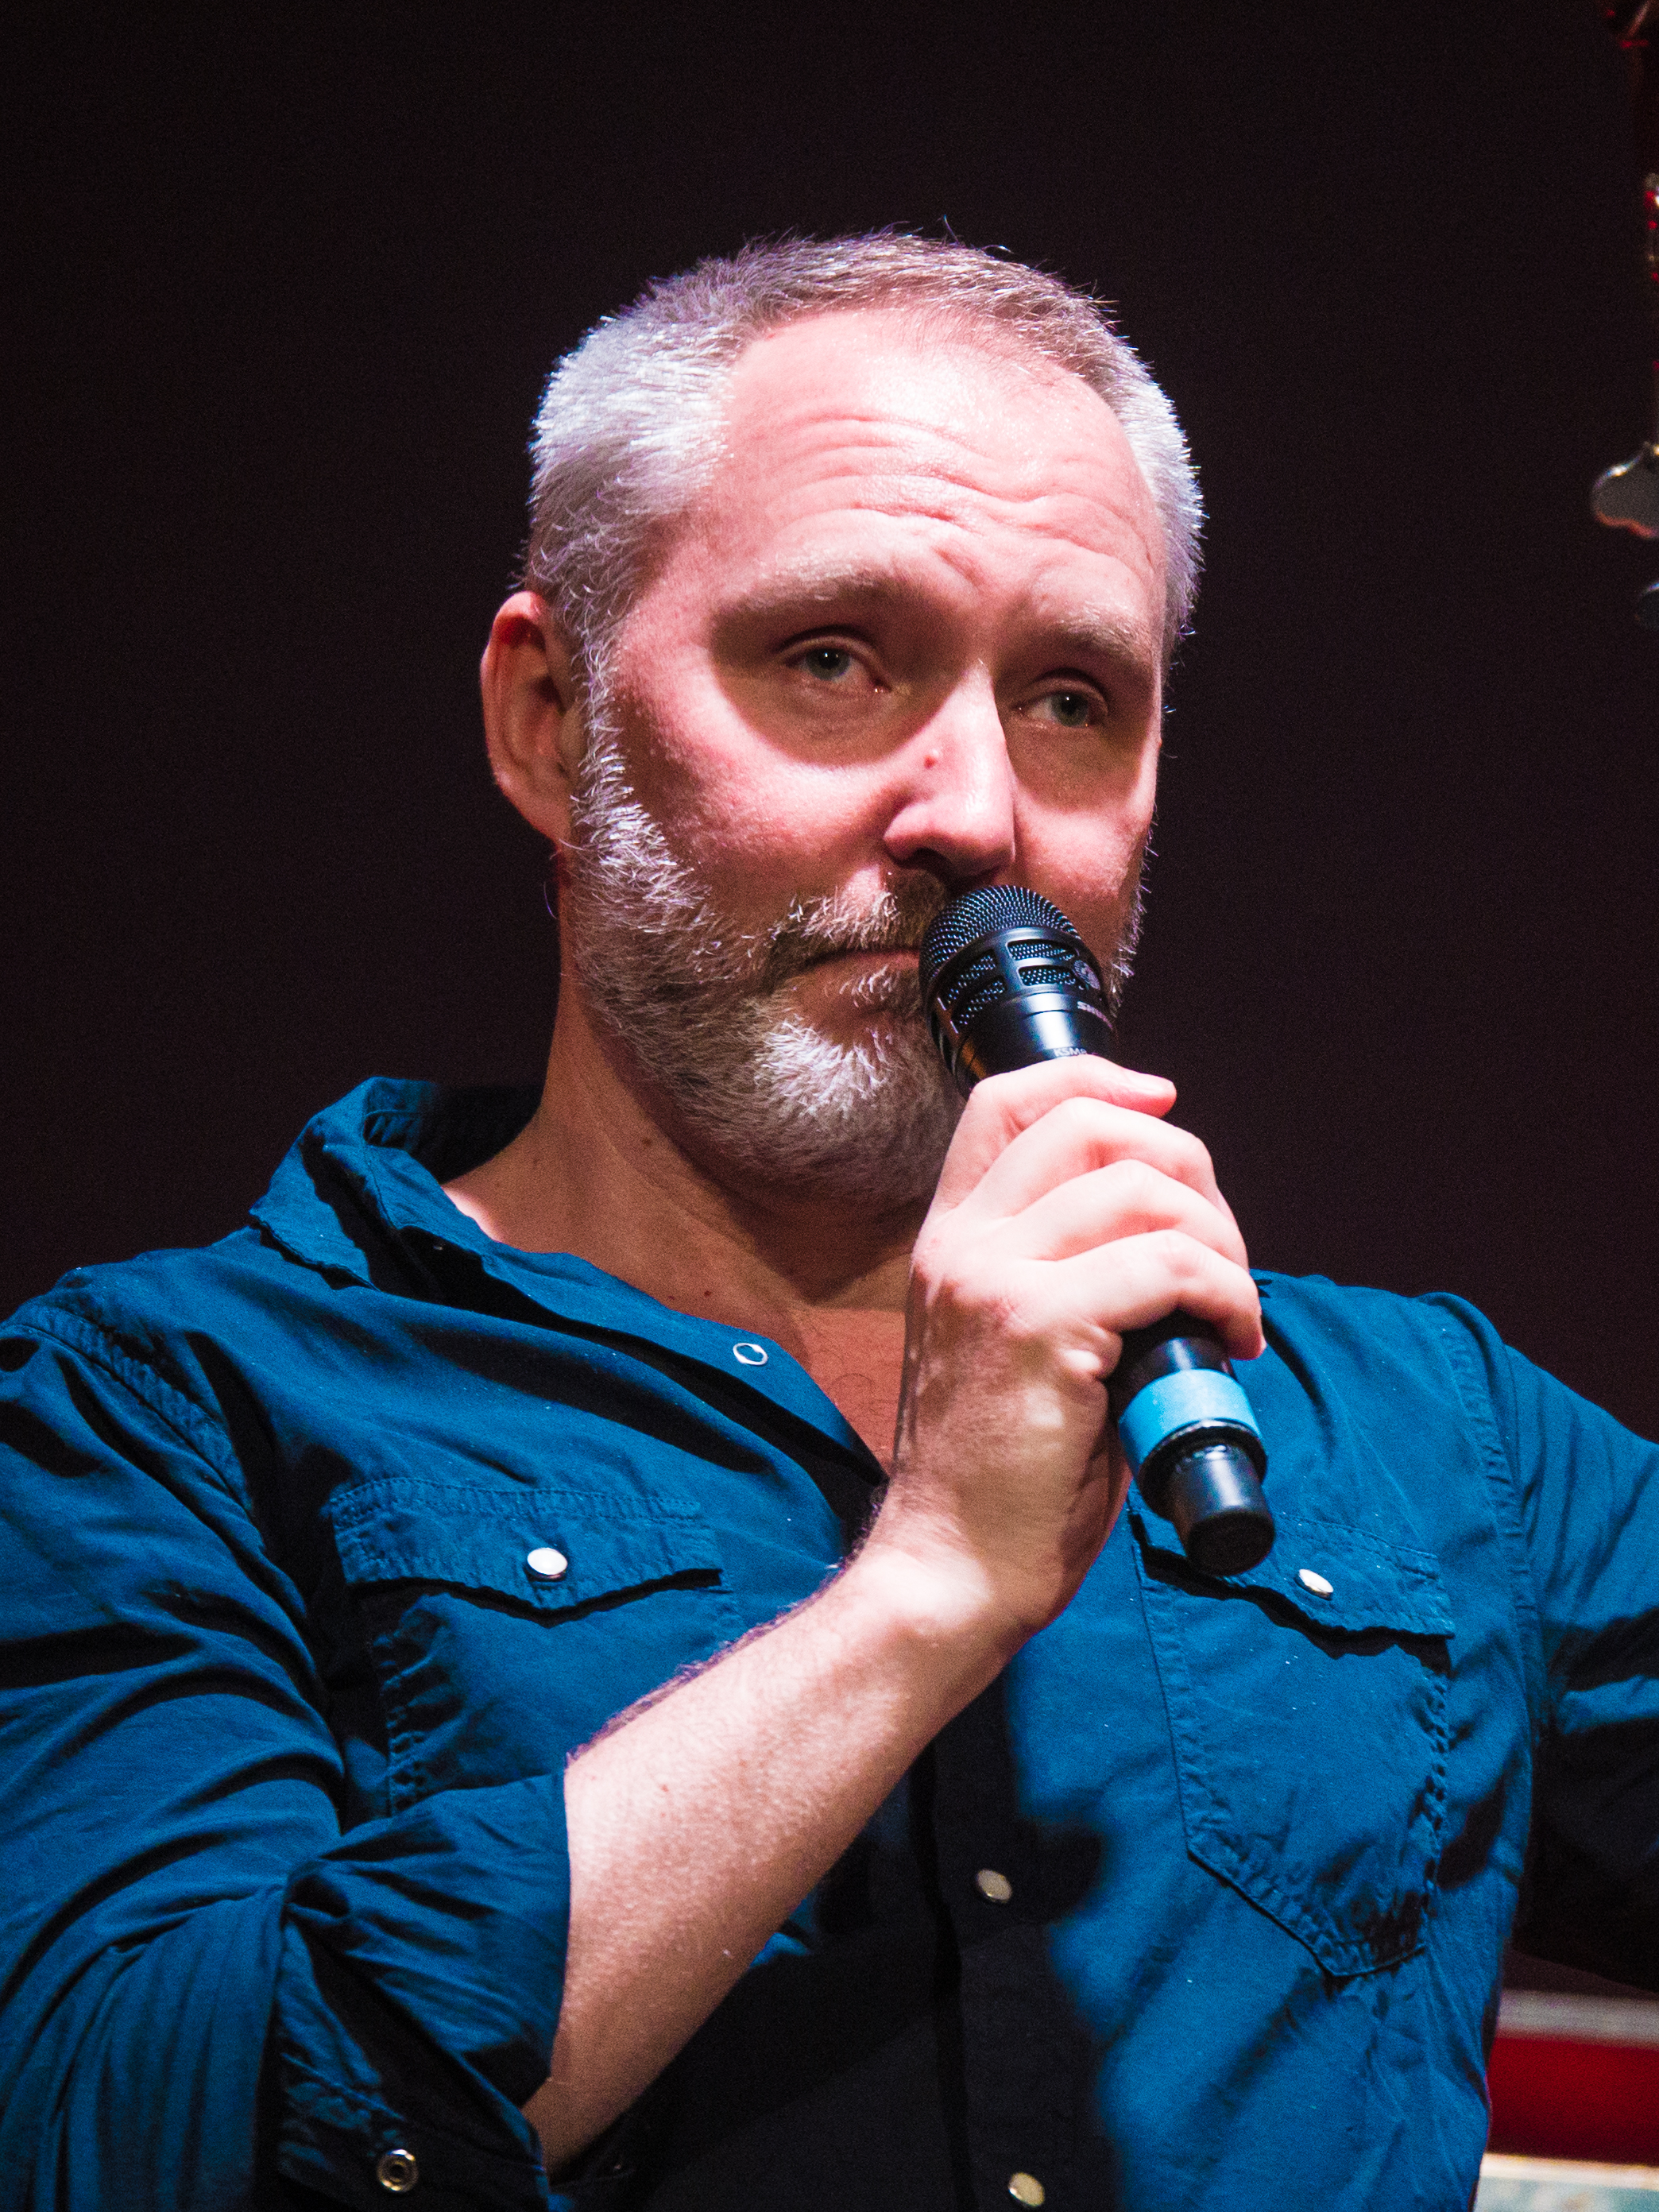 Anderson at the [[Moers Festival]] in 2017